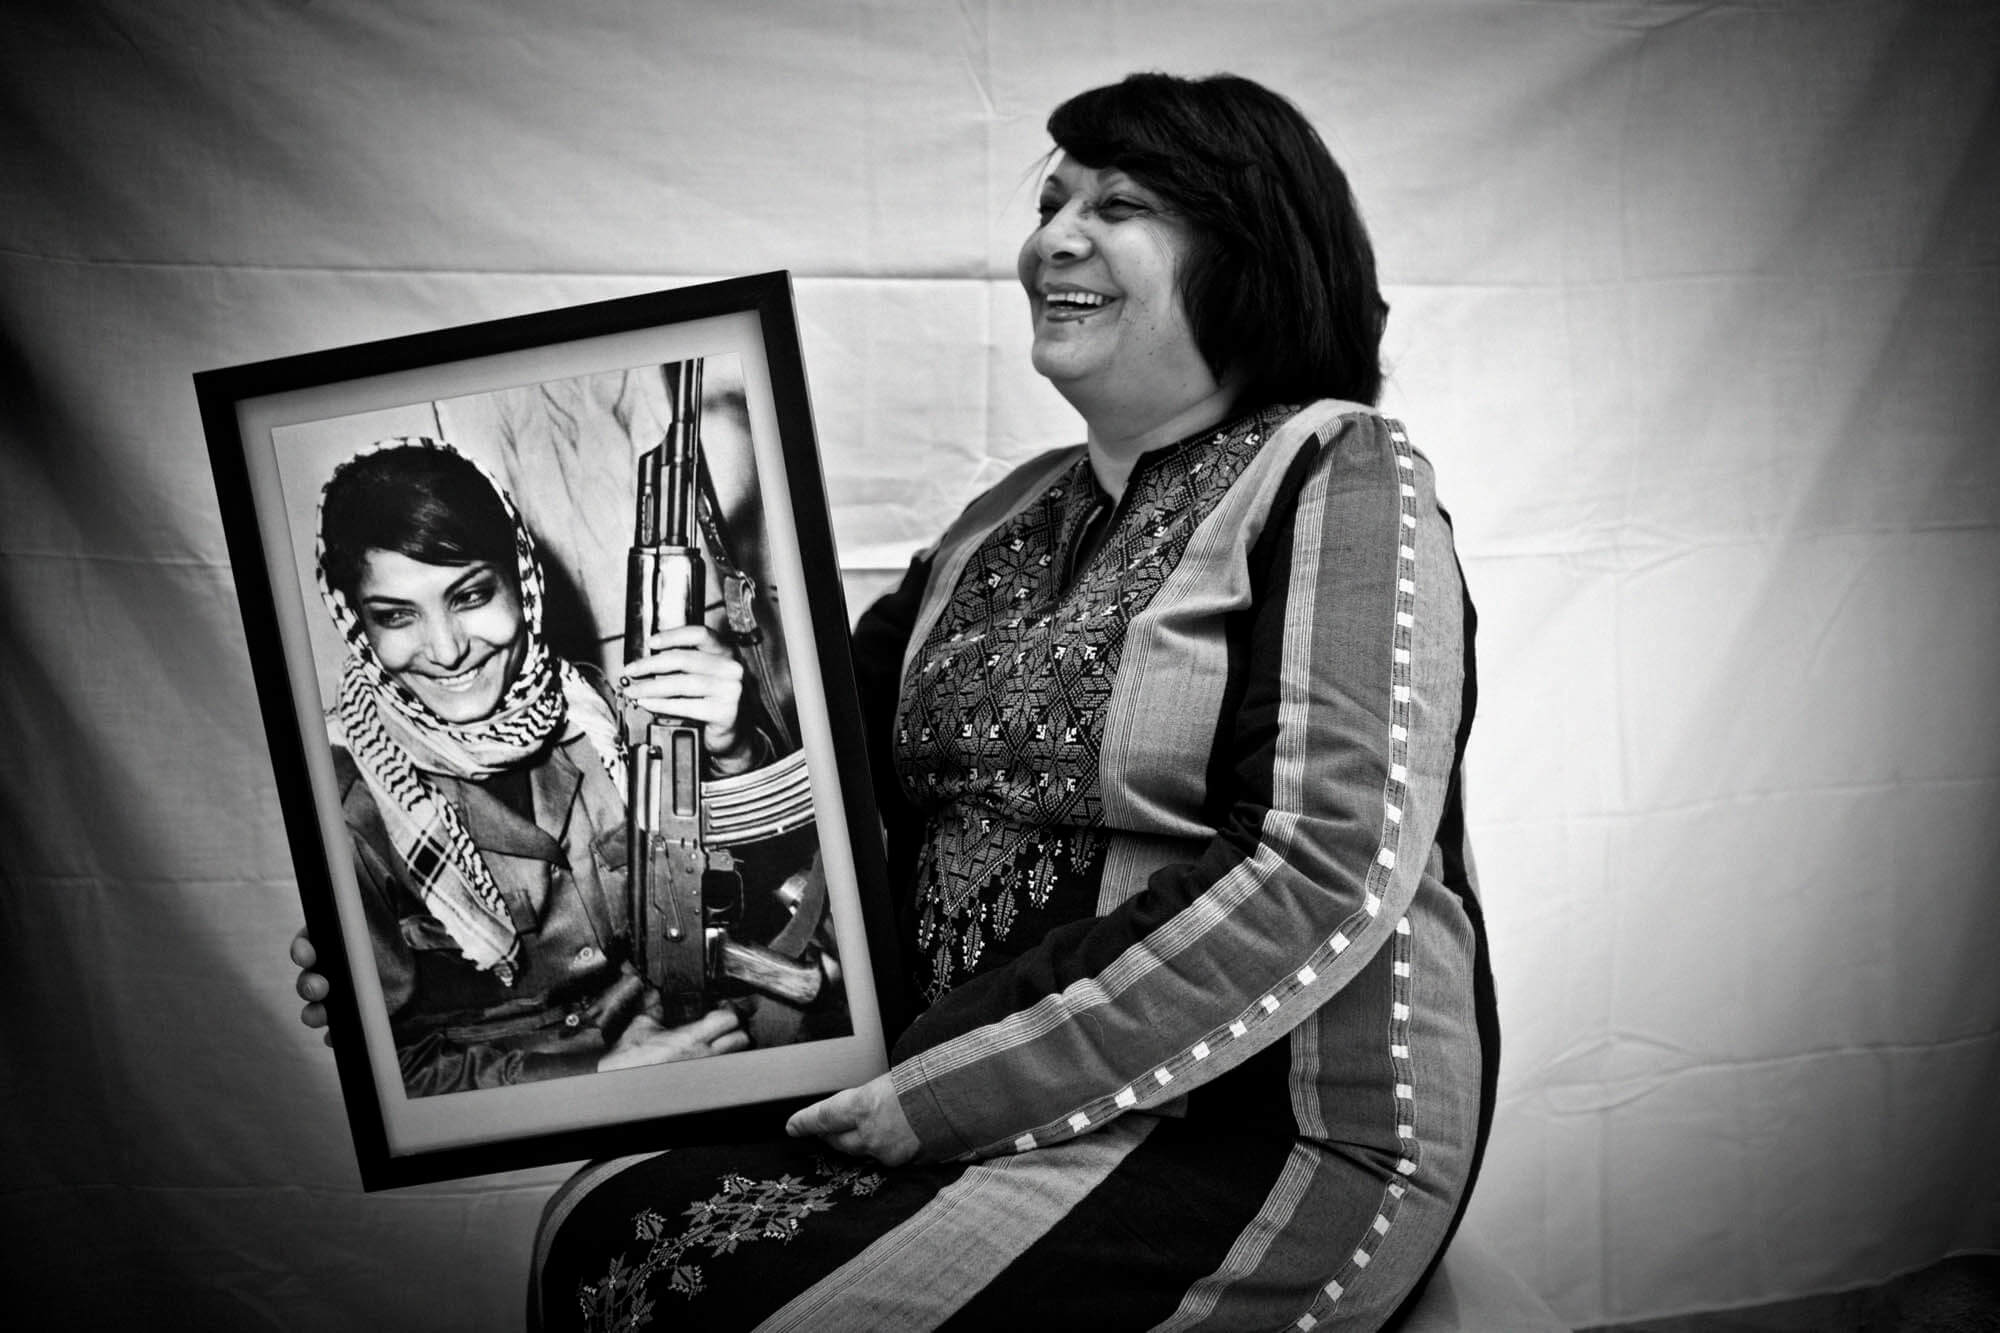 Leila Khaled holding a photo of her younger self in 2009 (Photo: Tanya Habjouqa)